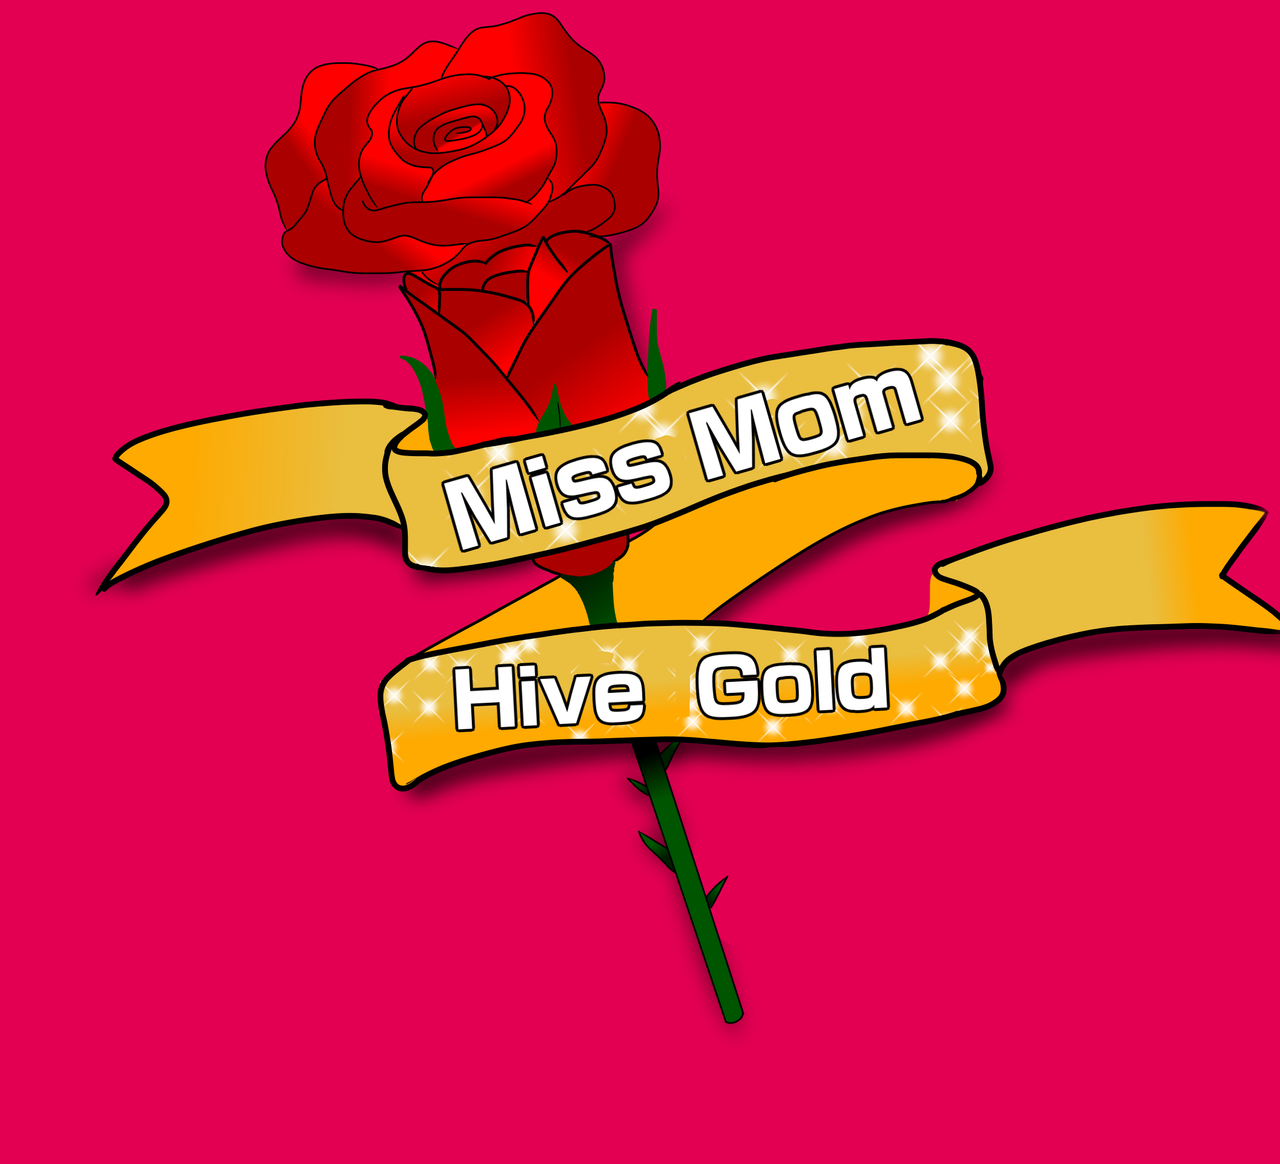 Miss_momm_gold-1.png